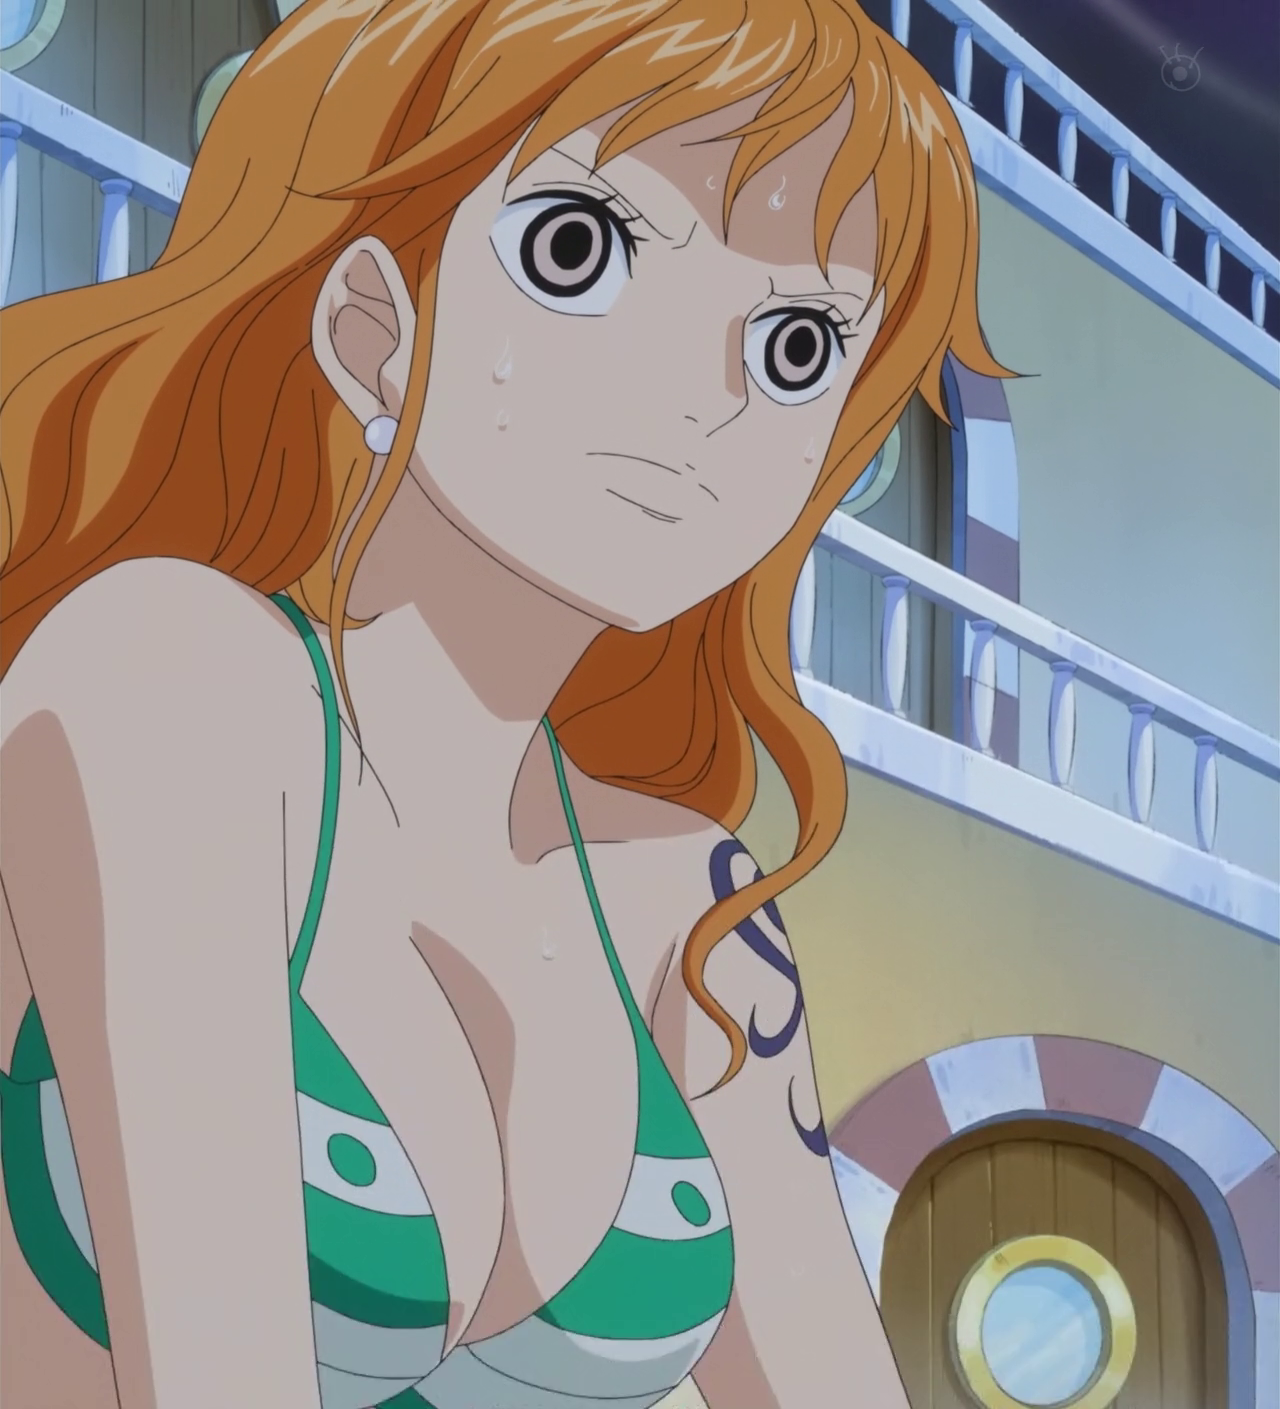 one piece capitulo 668 download movies - preqenadhap.cf